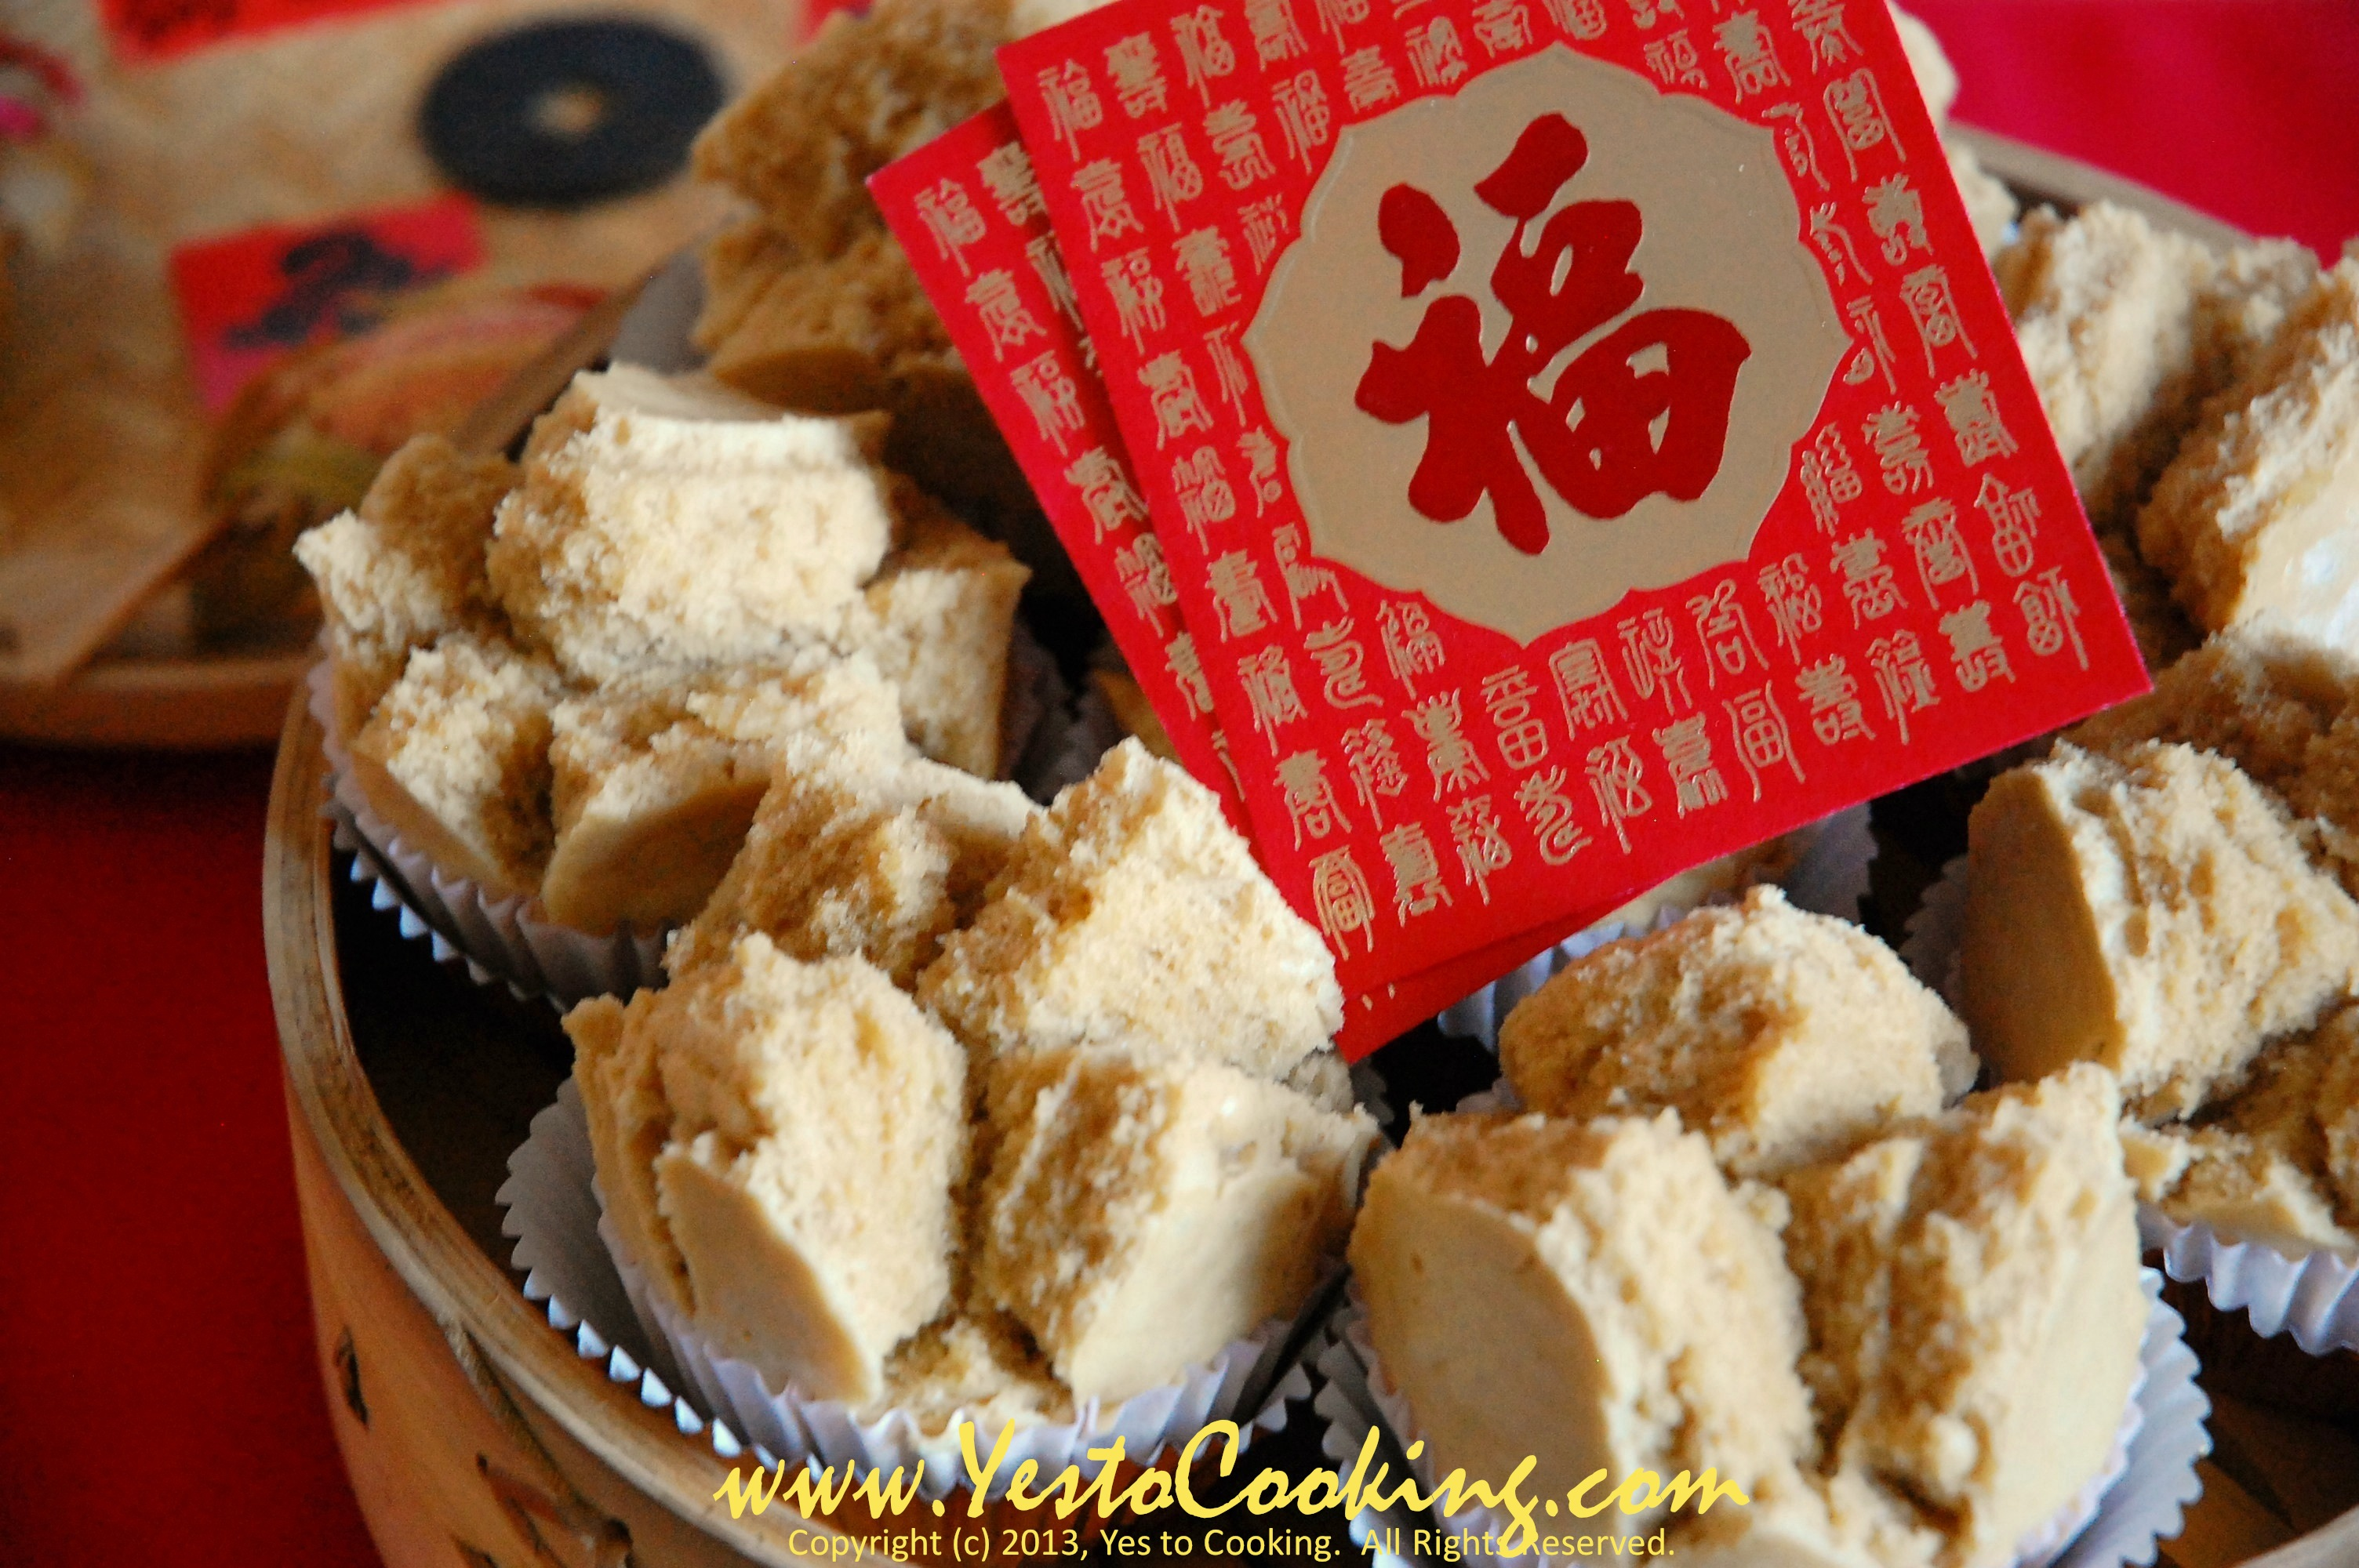 Lunar New Year Steamed Prosperity Cakes Yes To Cooking